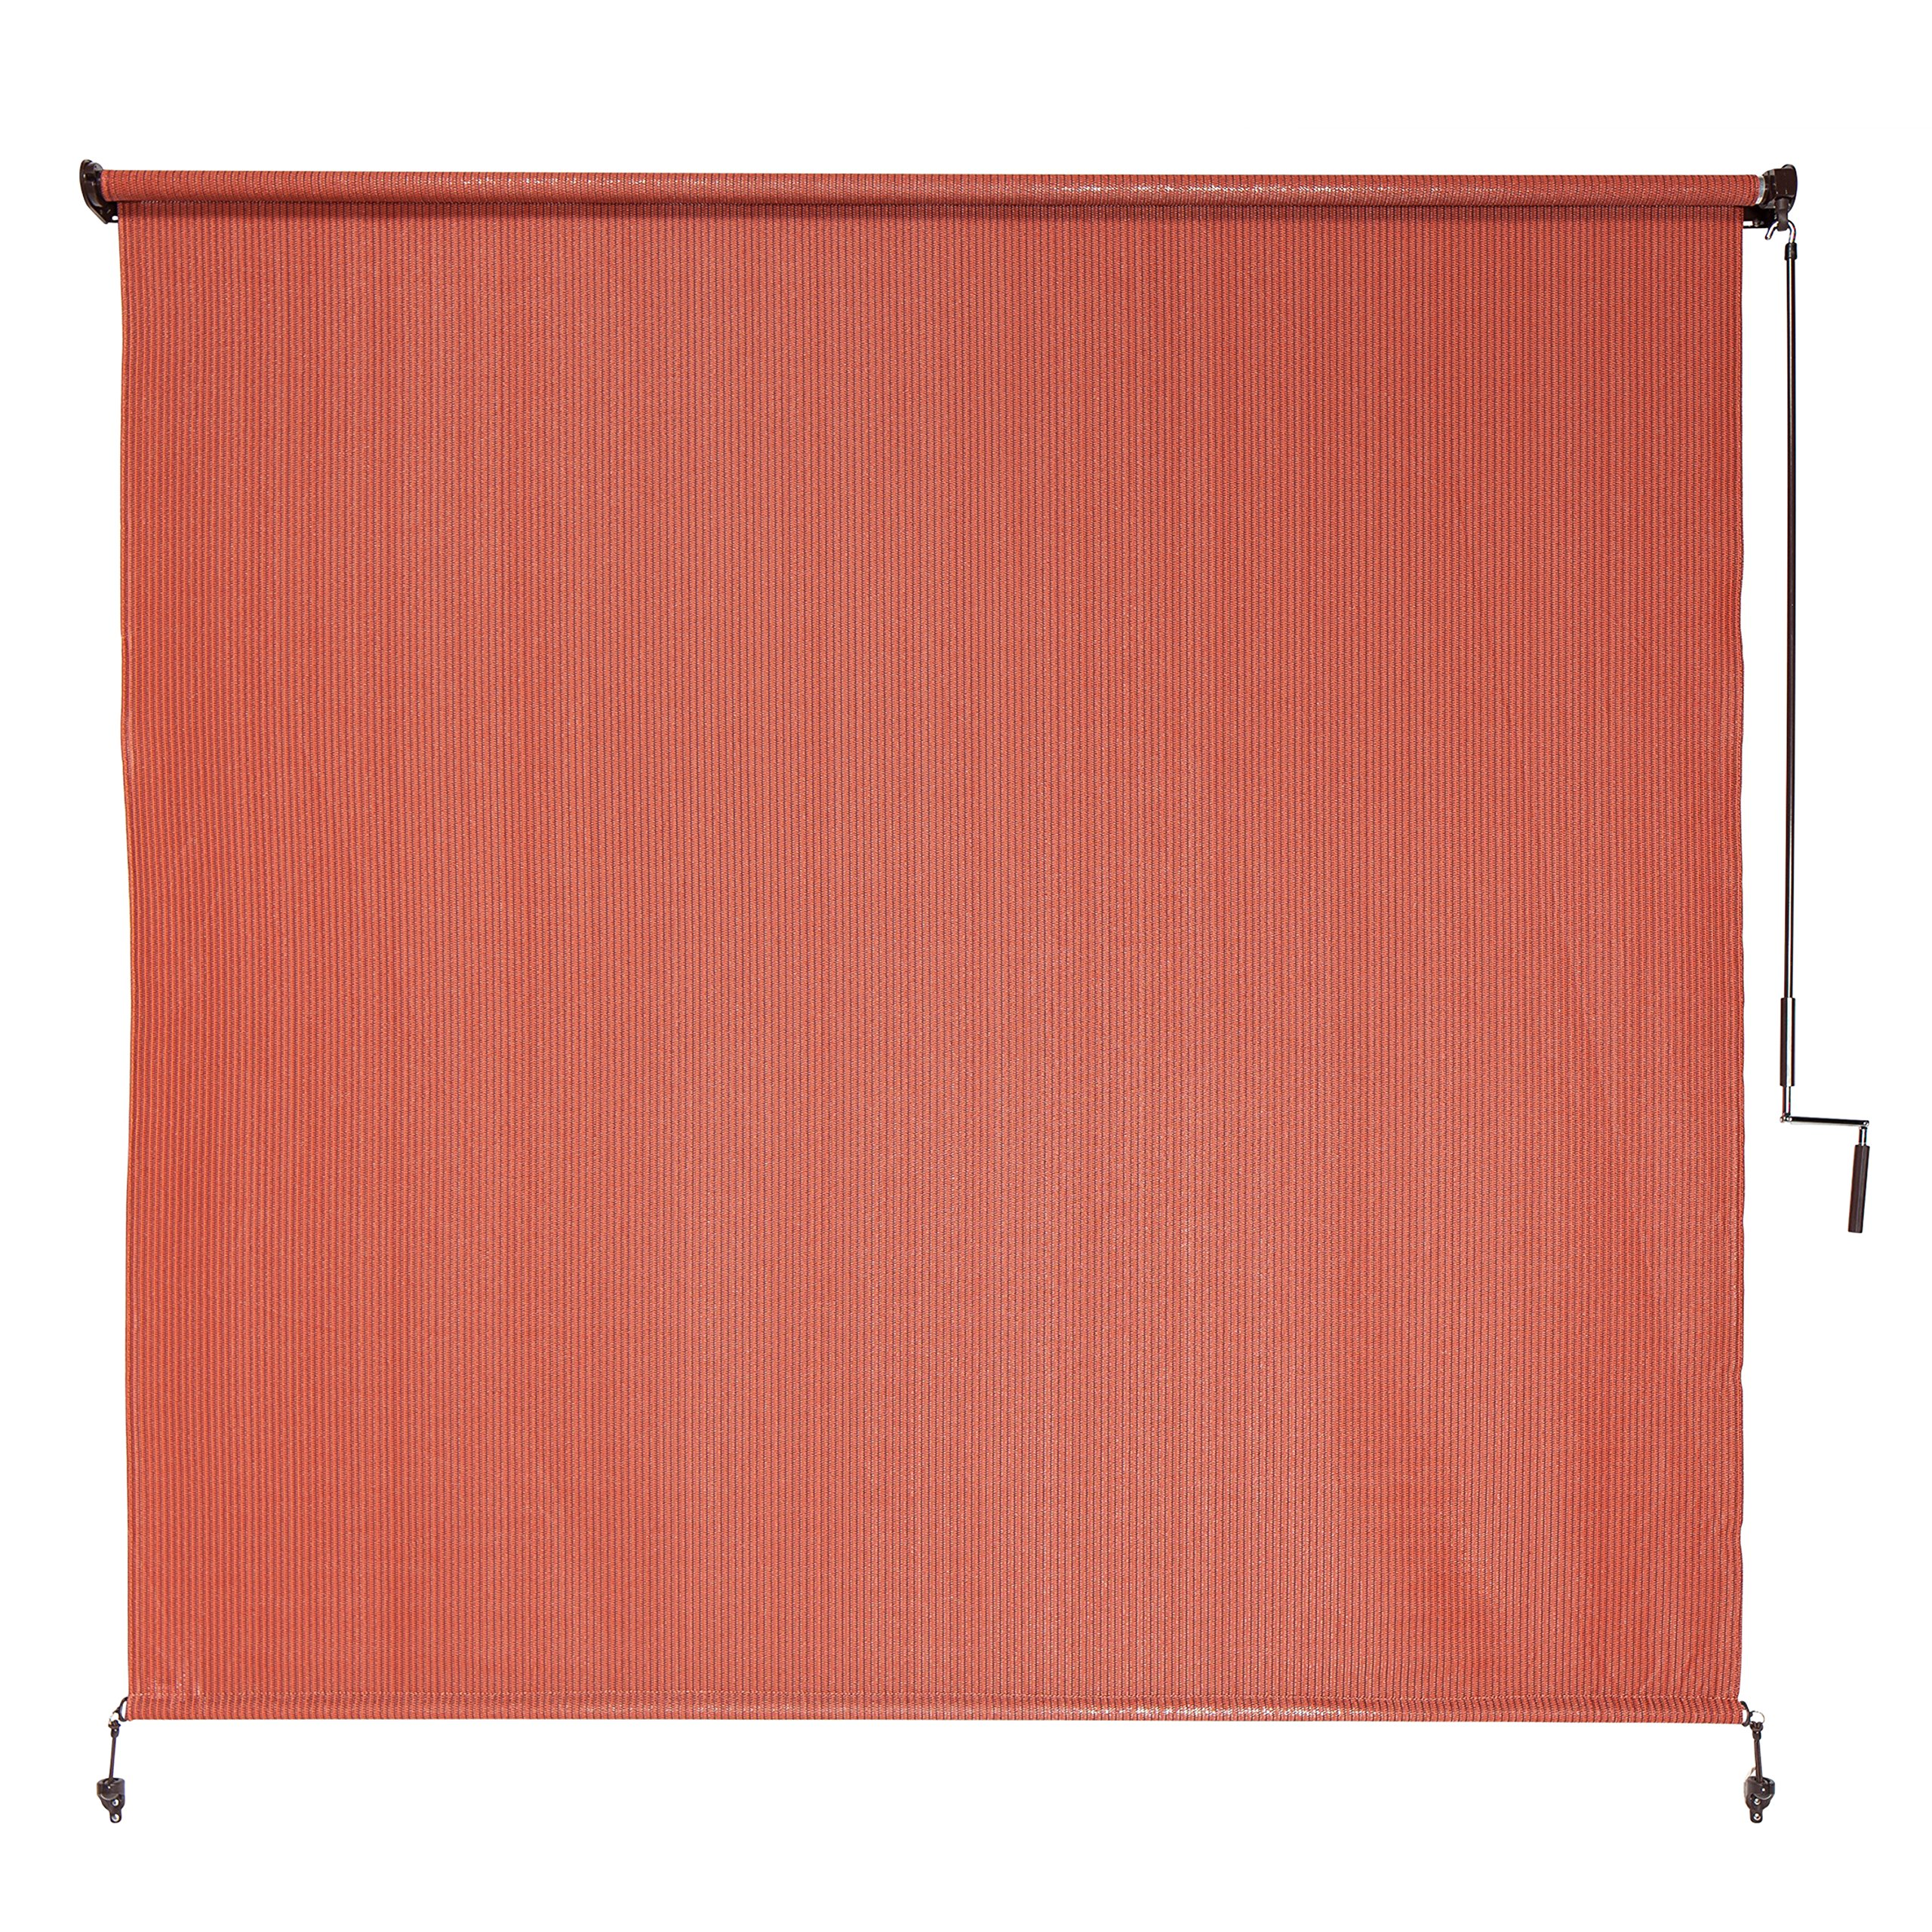 Coolaroo Outdoor Cordless Roller Shade 8ft by 6ft Terracotta